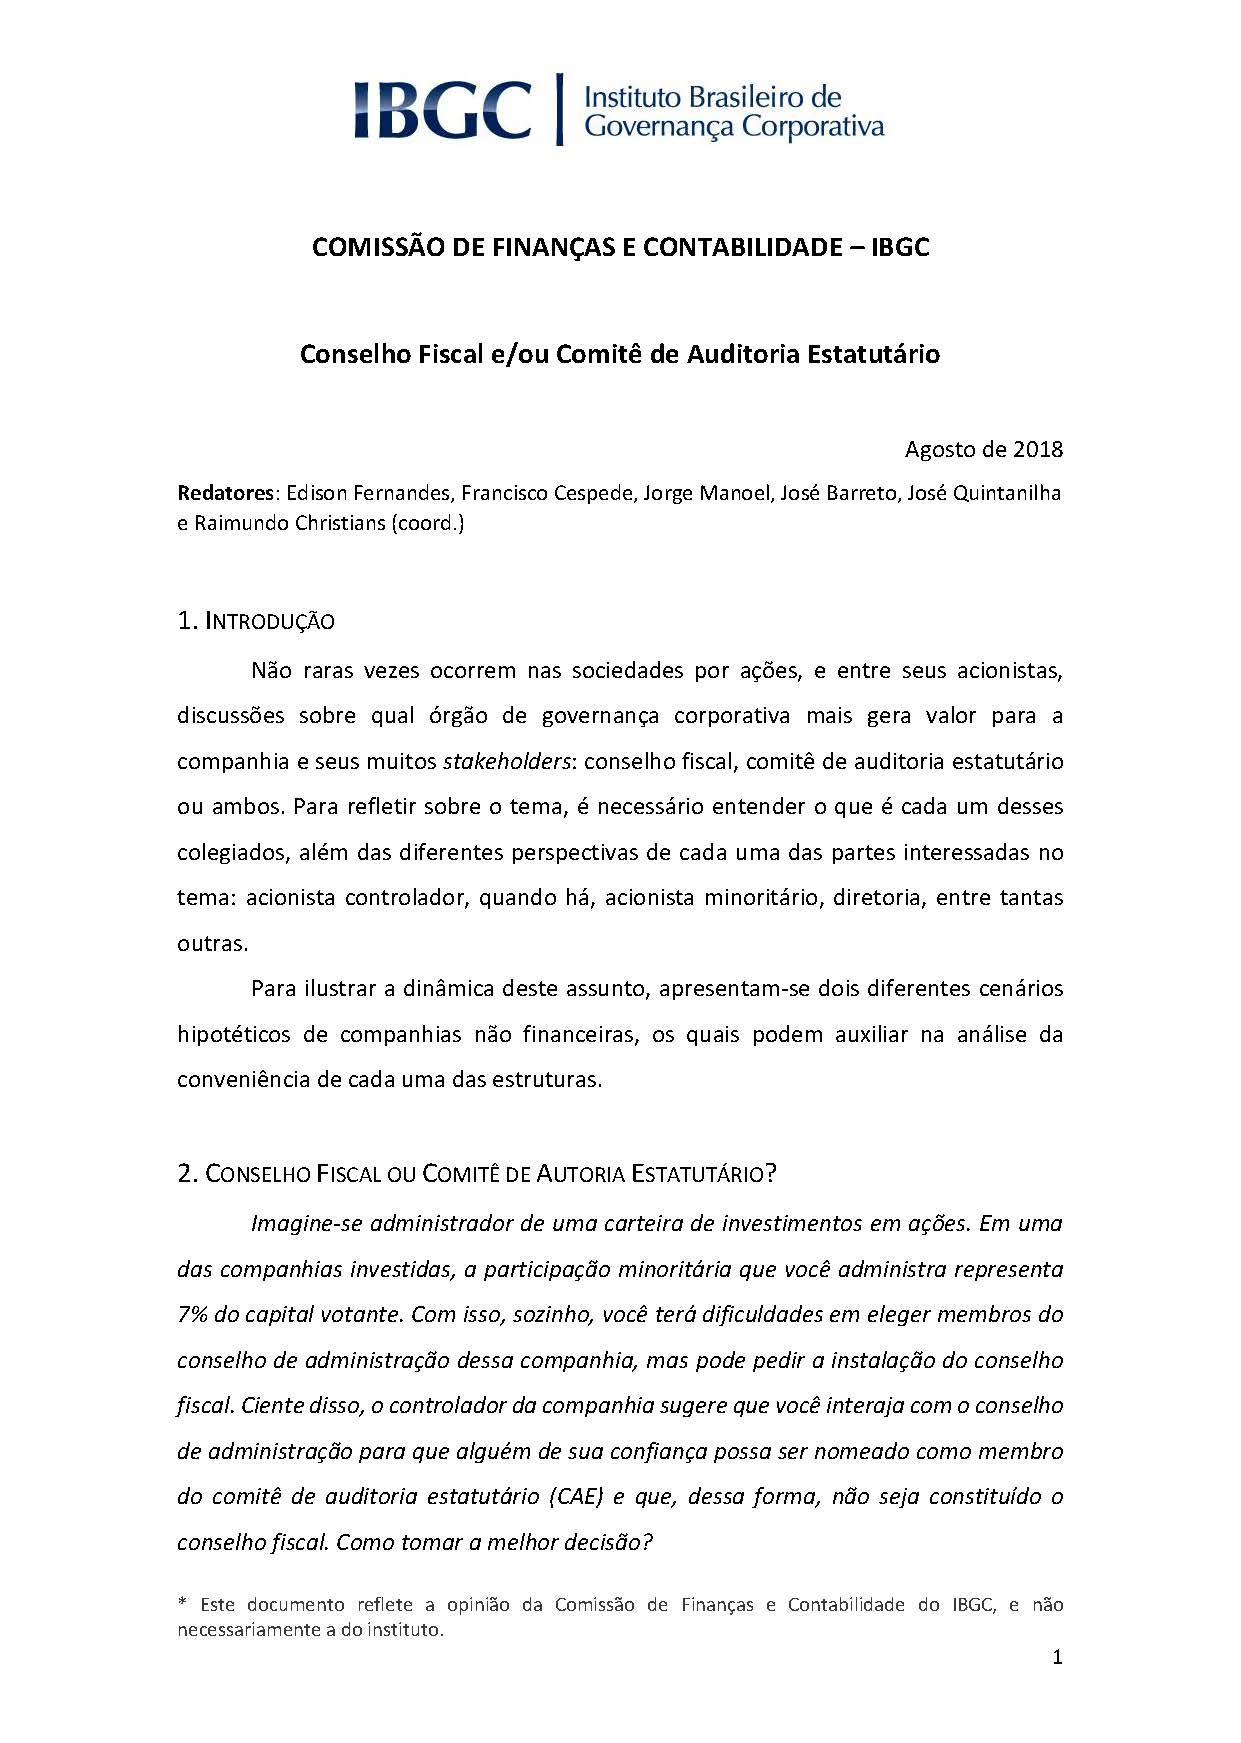 Publicacao-IBGCDiscute-CAExCF_Page_1